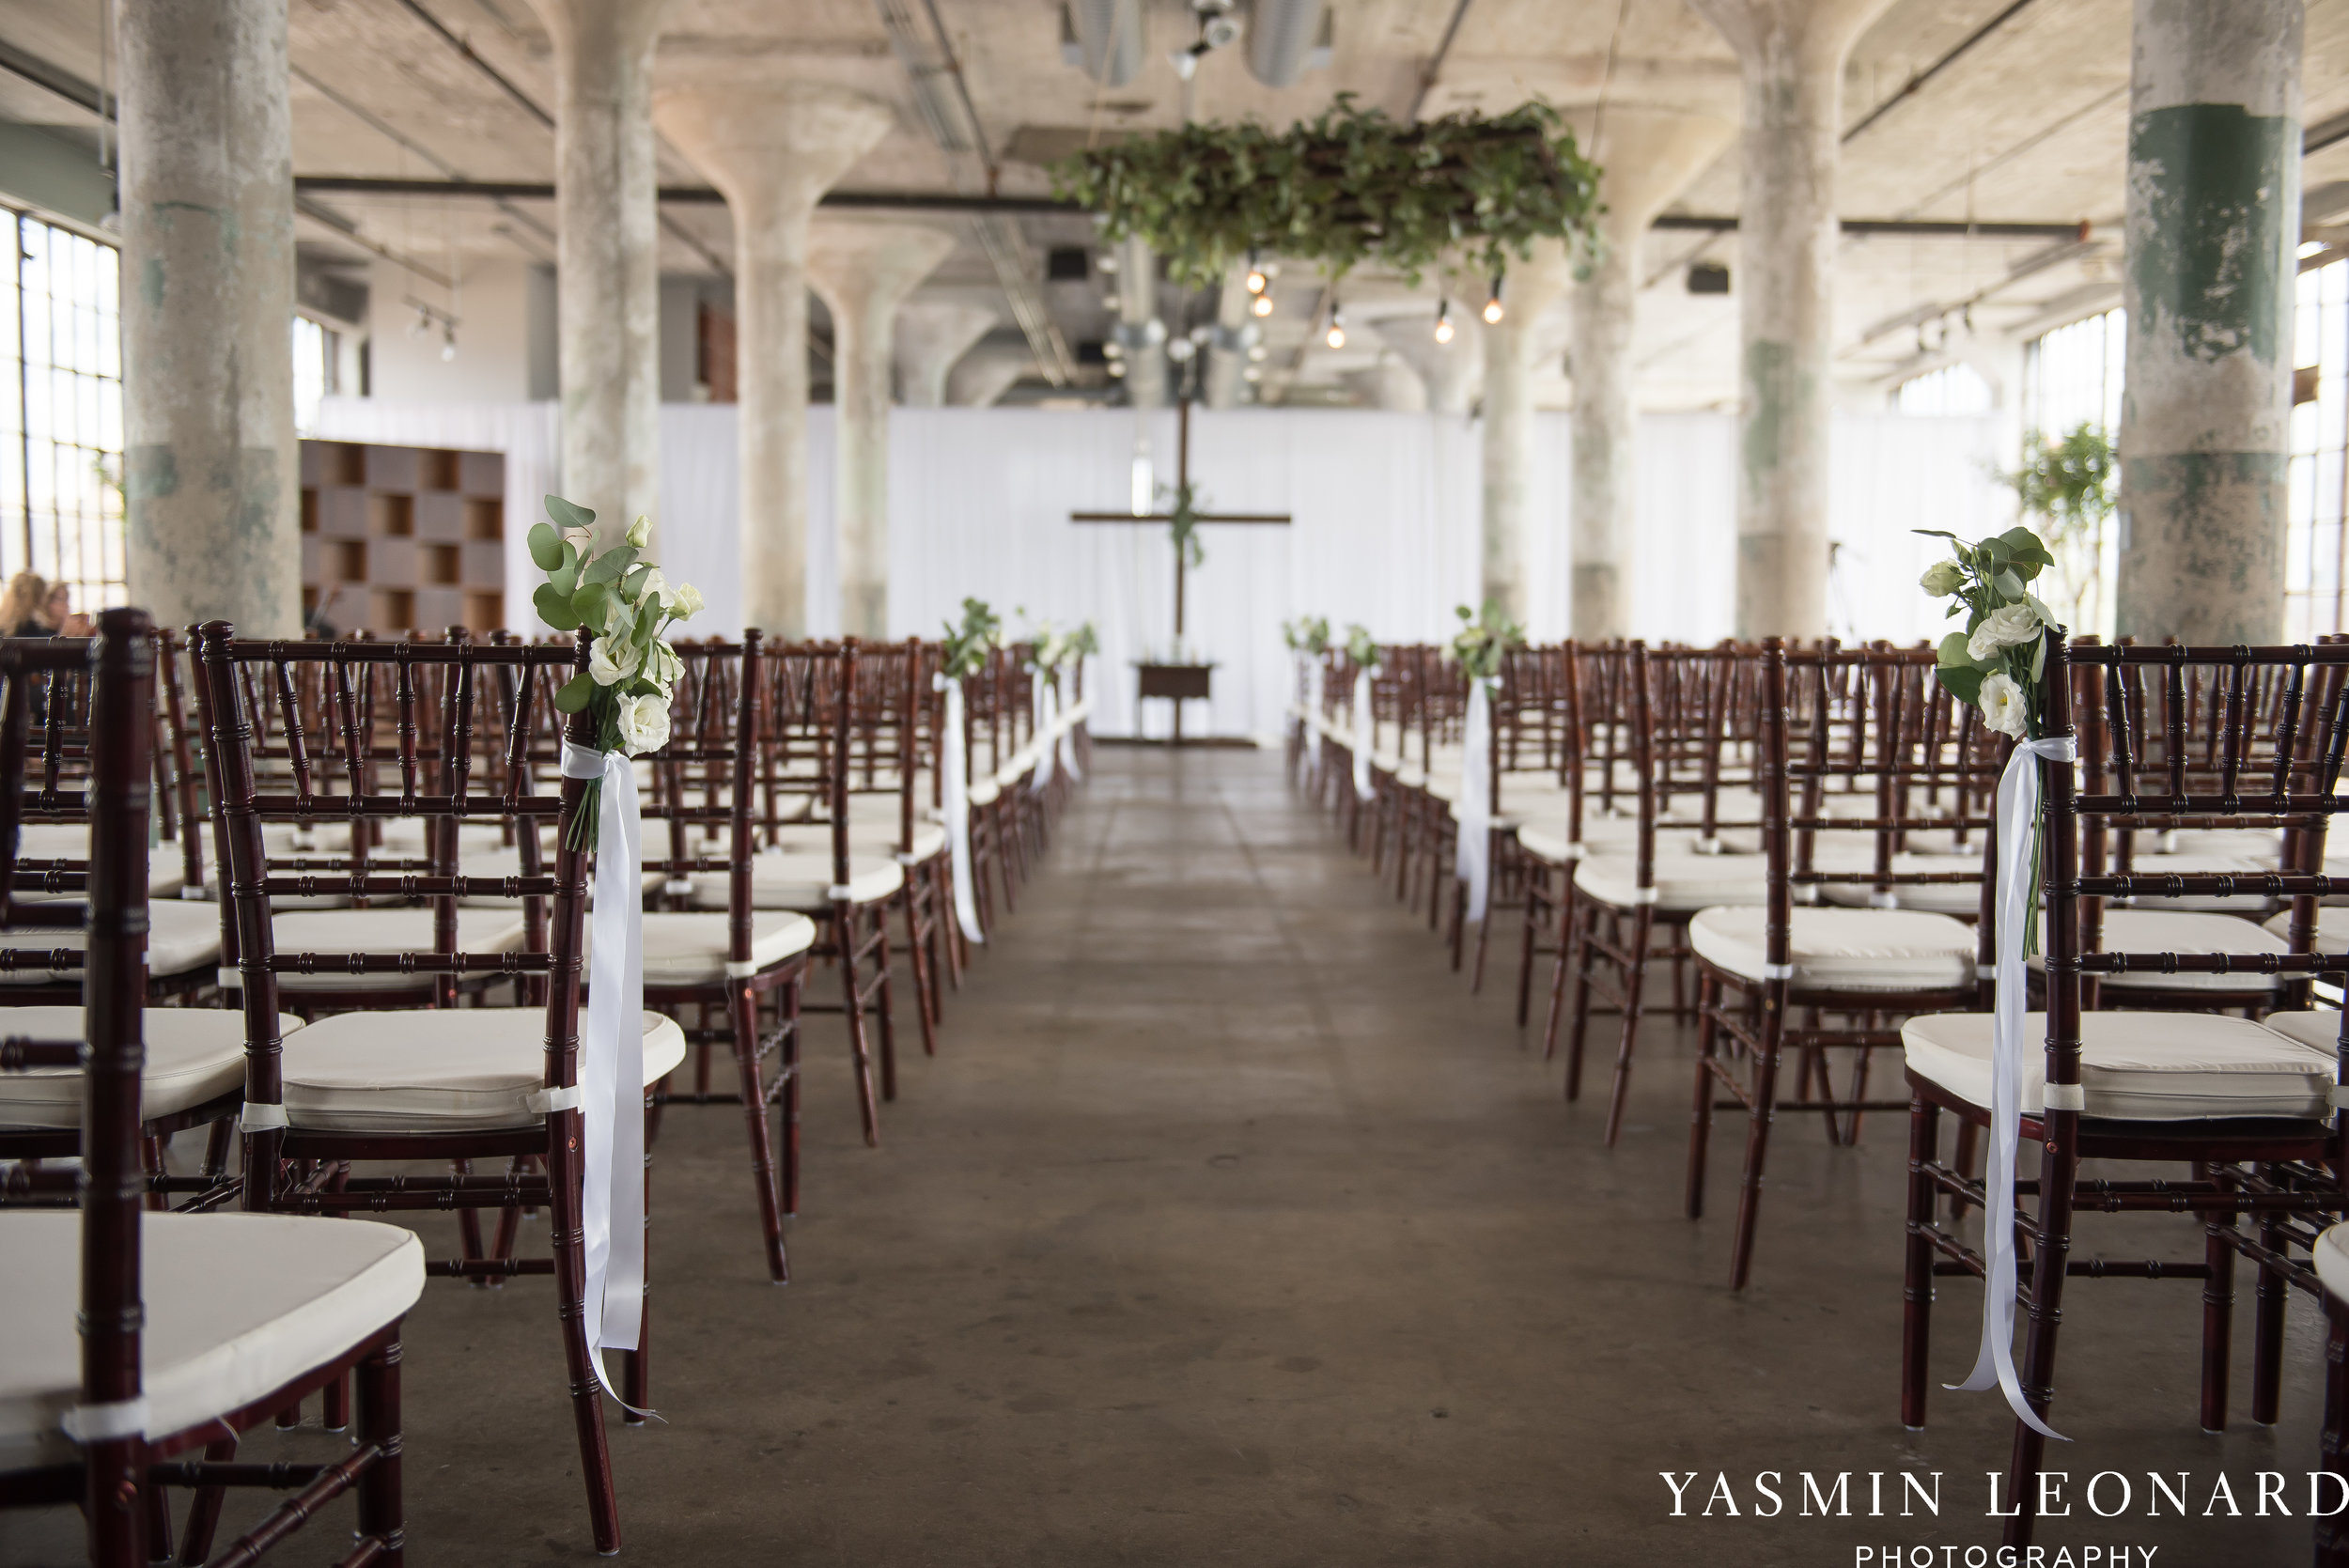 The Lofts at Union Square | High Point NC | High Point NC Wedding Venue